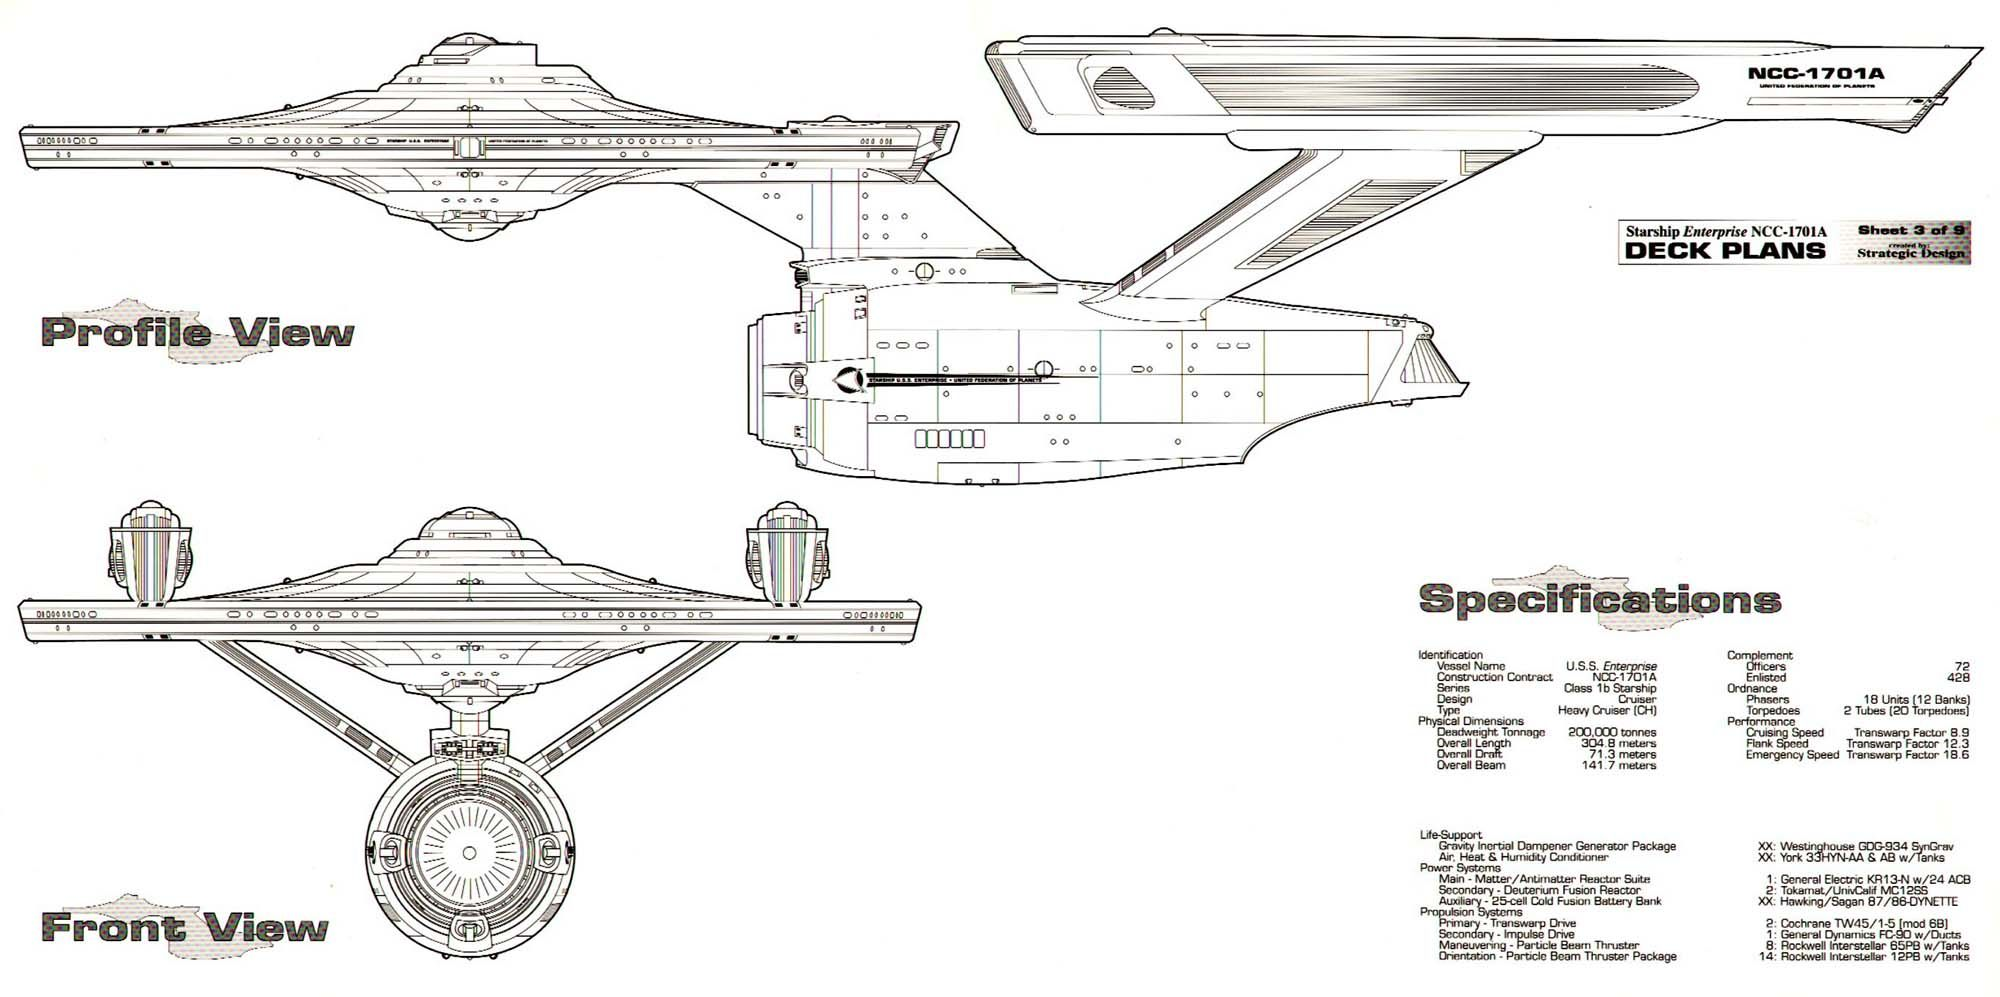 U.S.S Enterprise NCC-1701A Deck Plans